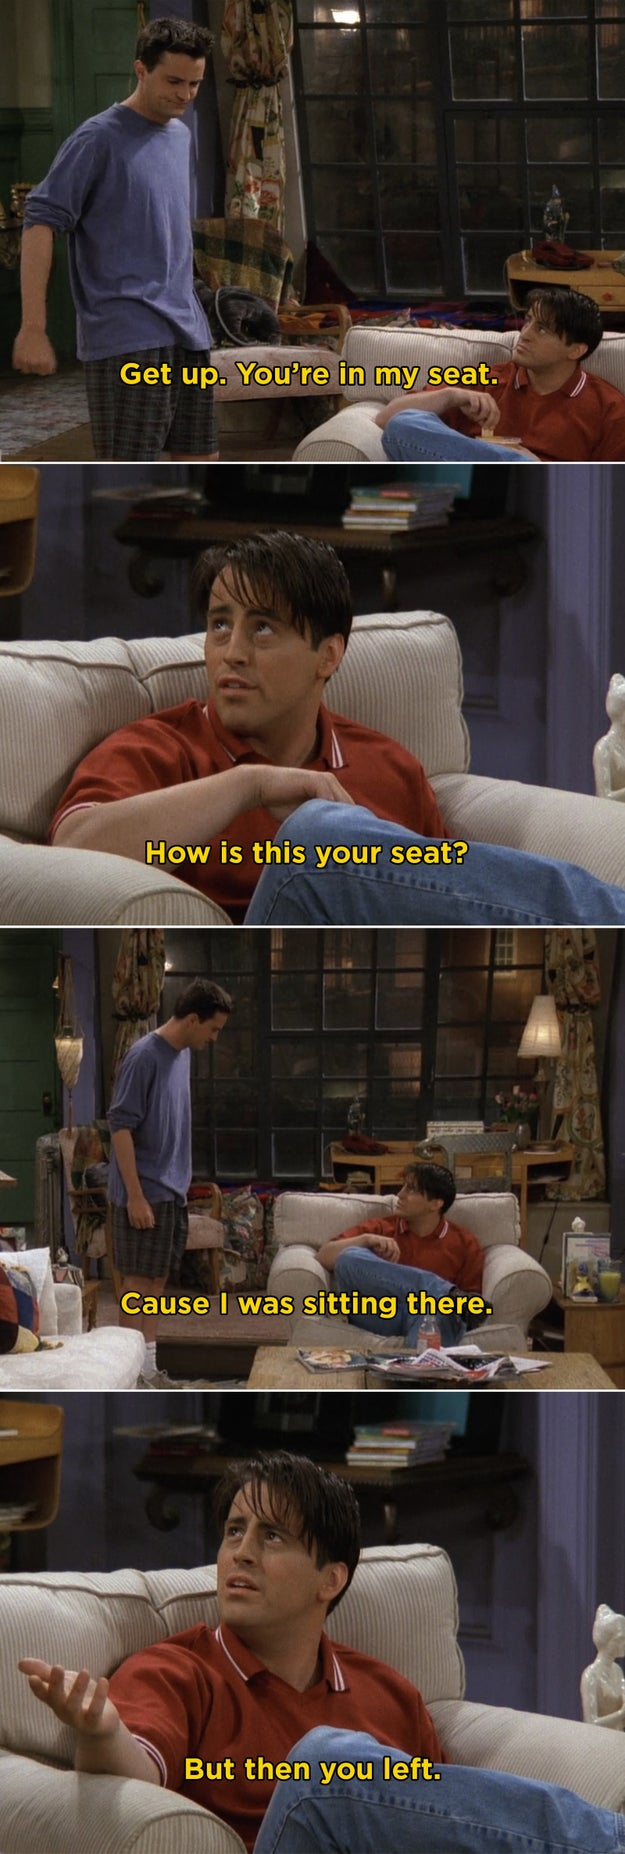 When Joey and Chandler made such a big deal about sitting in the chair in Monica's apartment.